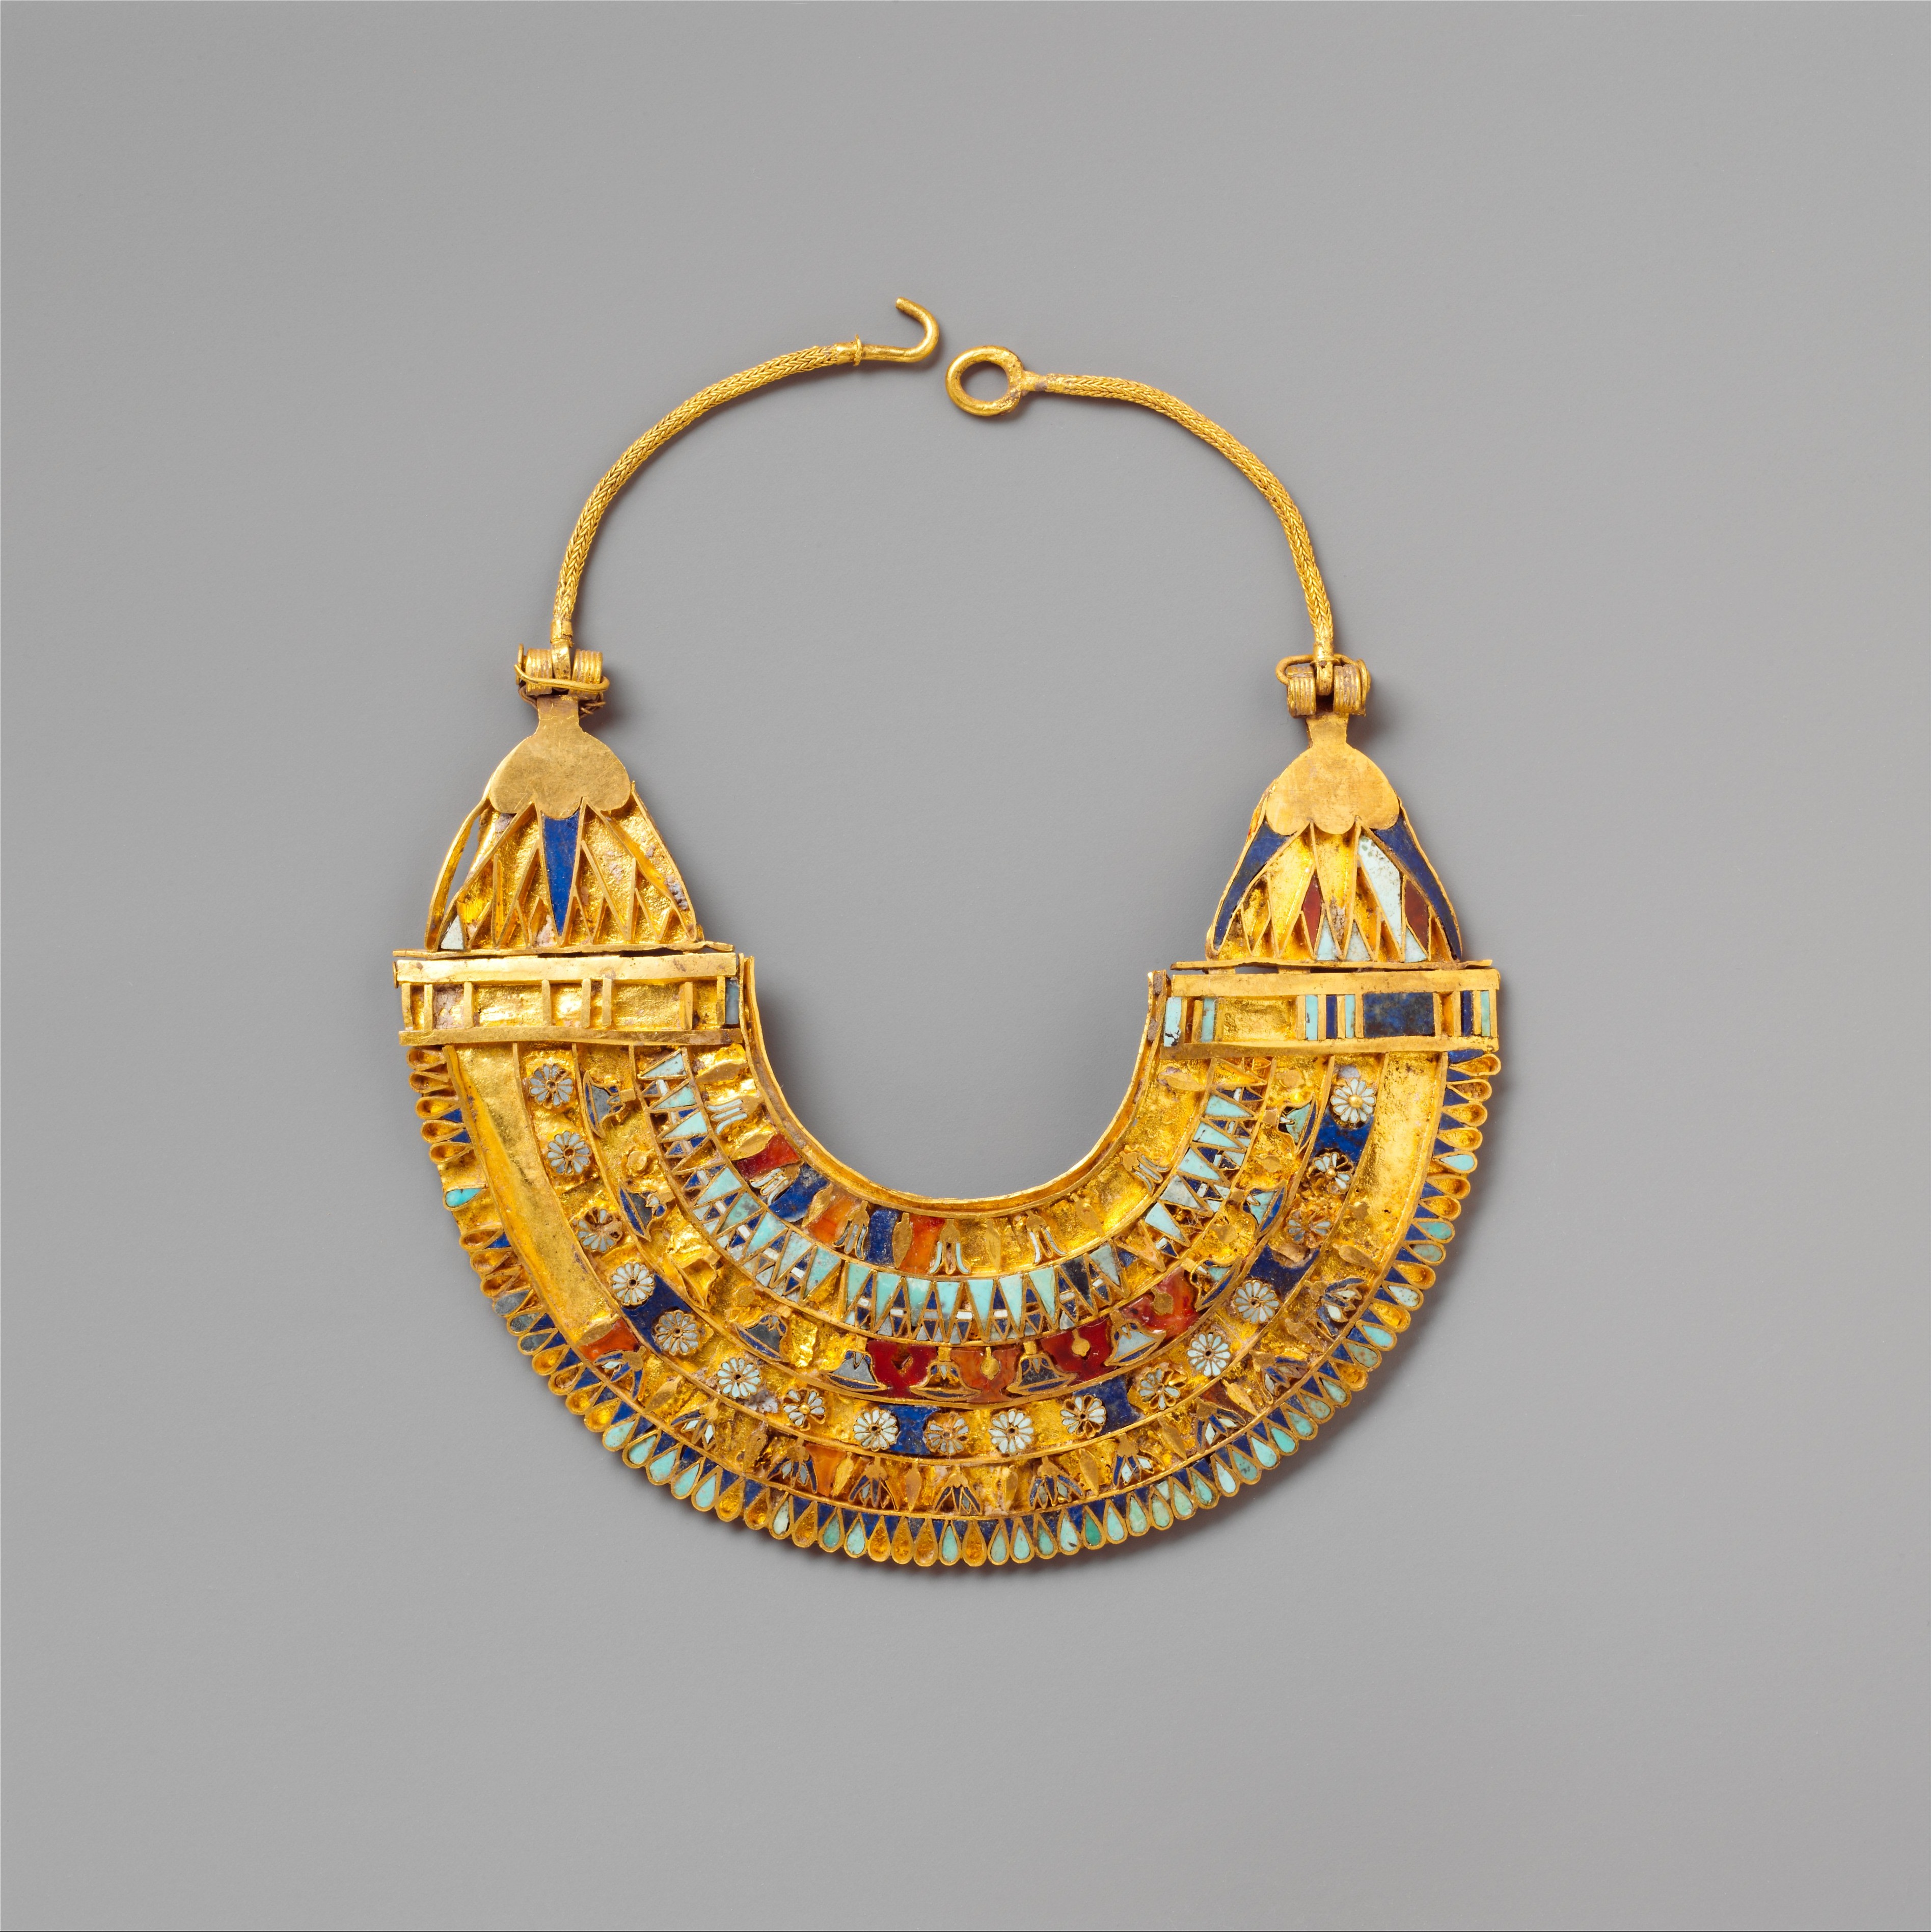 1000 images about egyptian jewelry on pinterest ancient for Egyptian jewelry